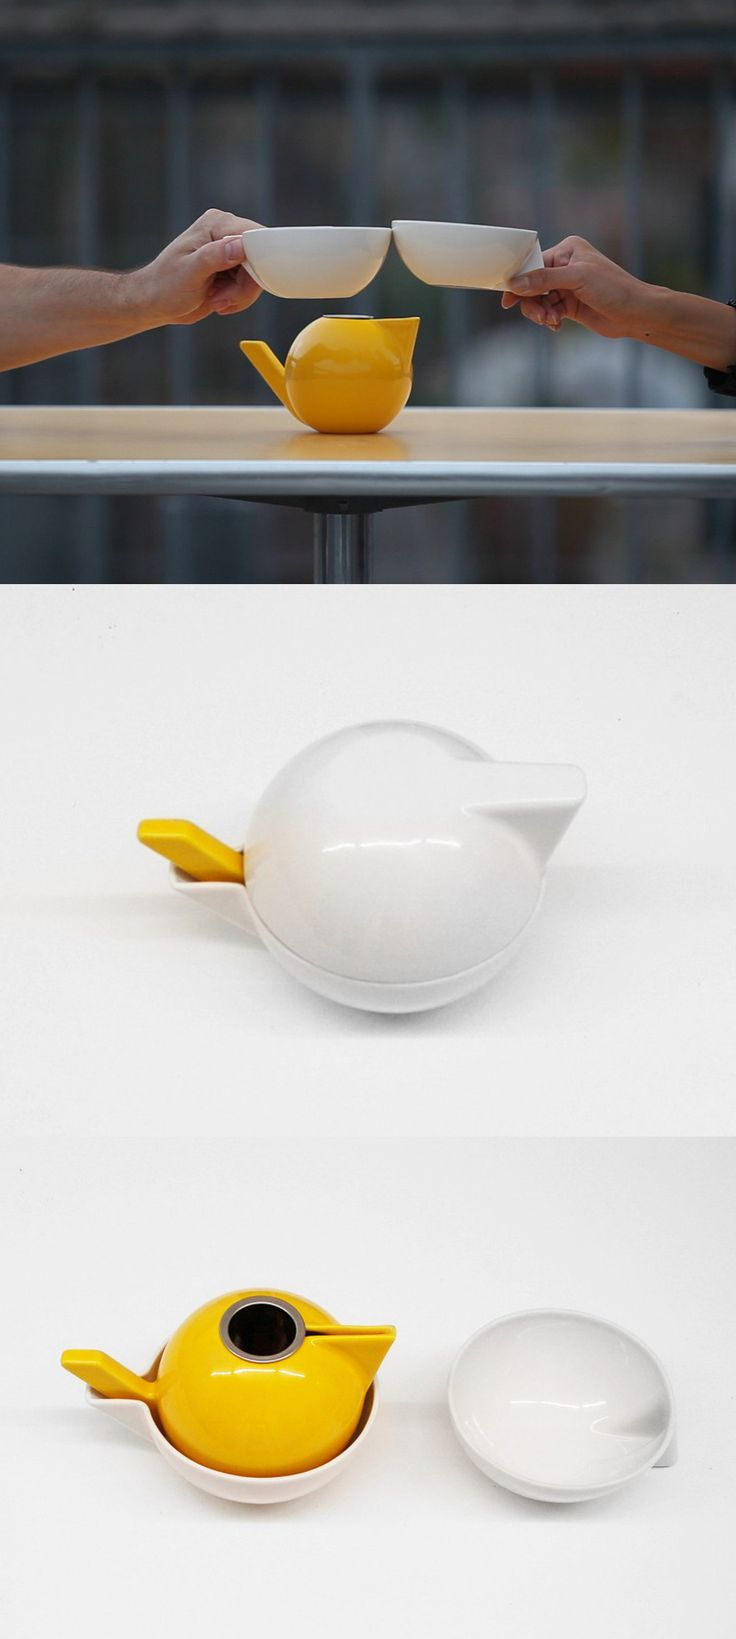 Should you love kitchenware you really will enjoy this cool site!